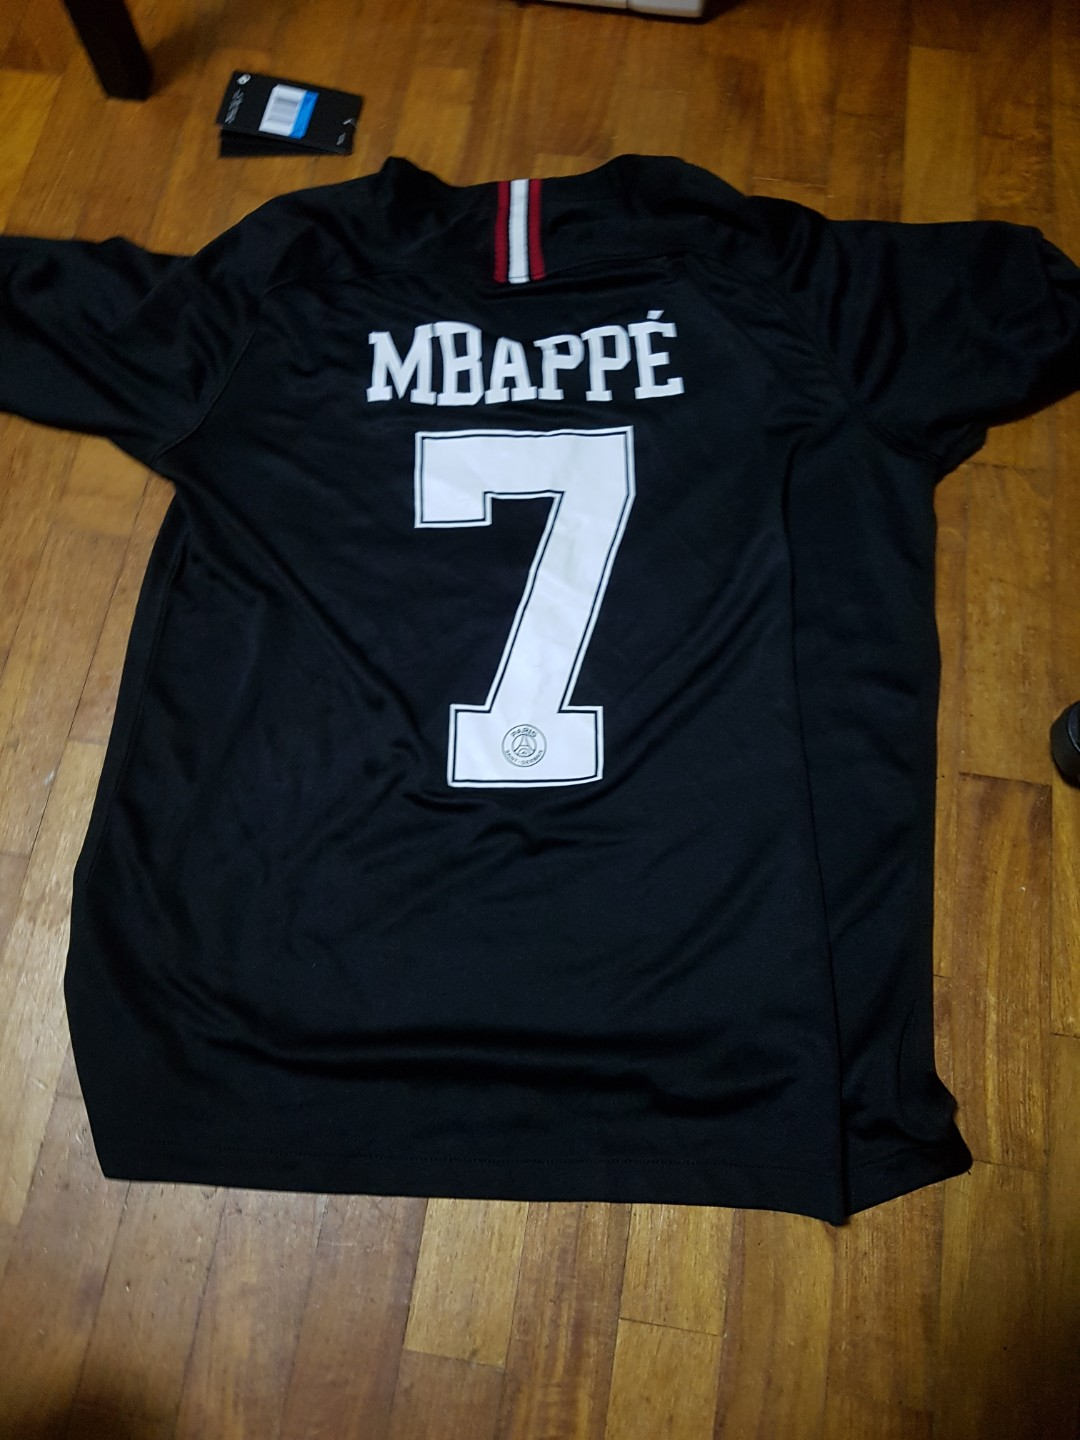 best service cba5f edf78 AUTHENTIC!!!!*BRAND NEW WITH TAGS* Psg 2017/18 Mbappe jordan jersey